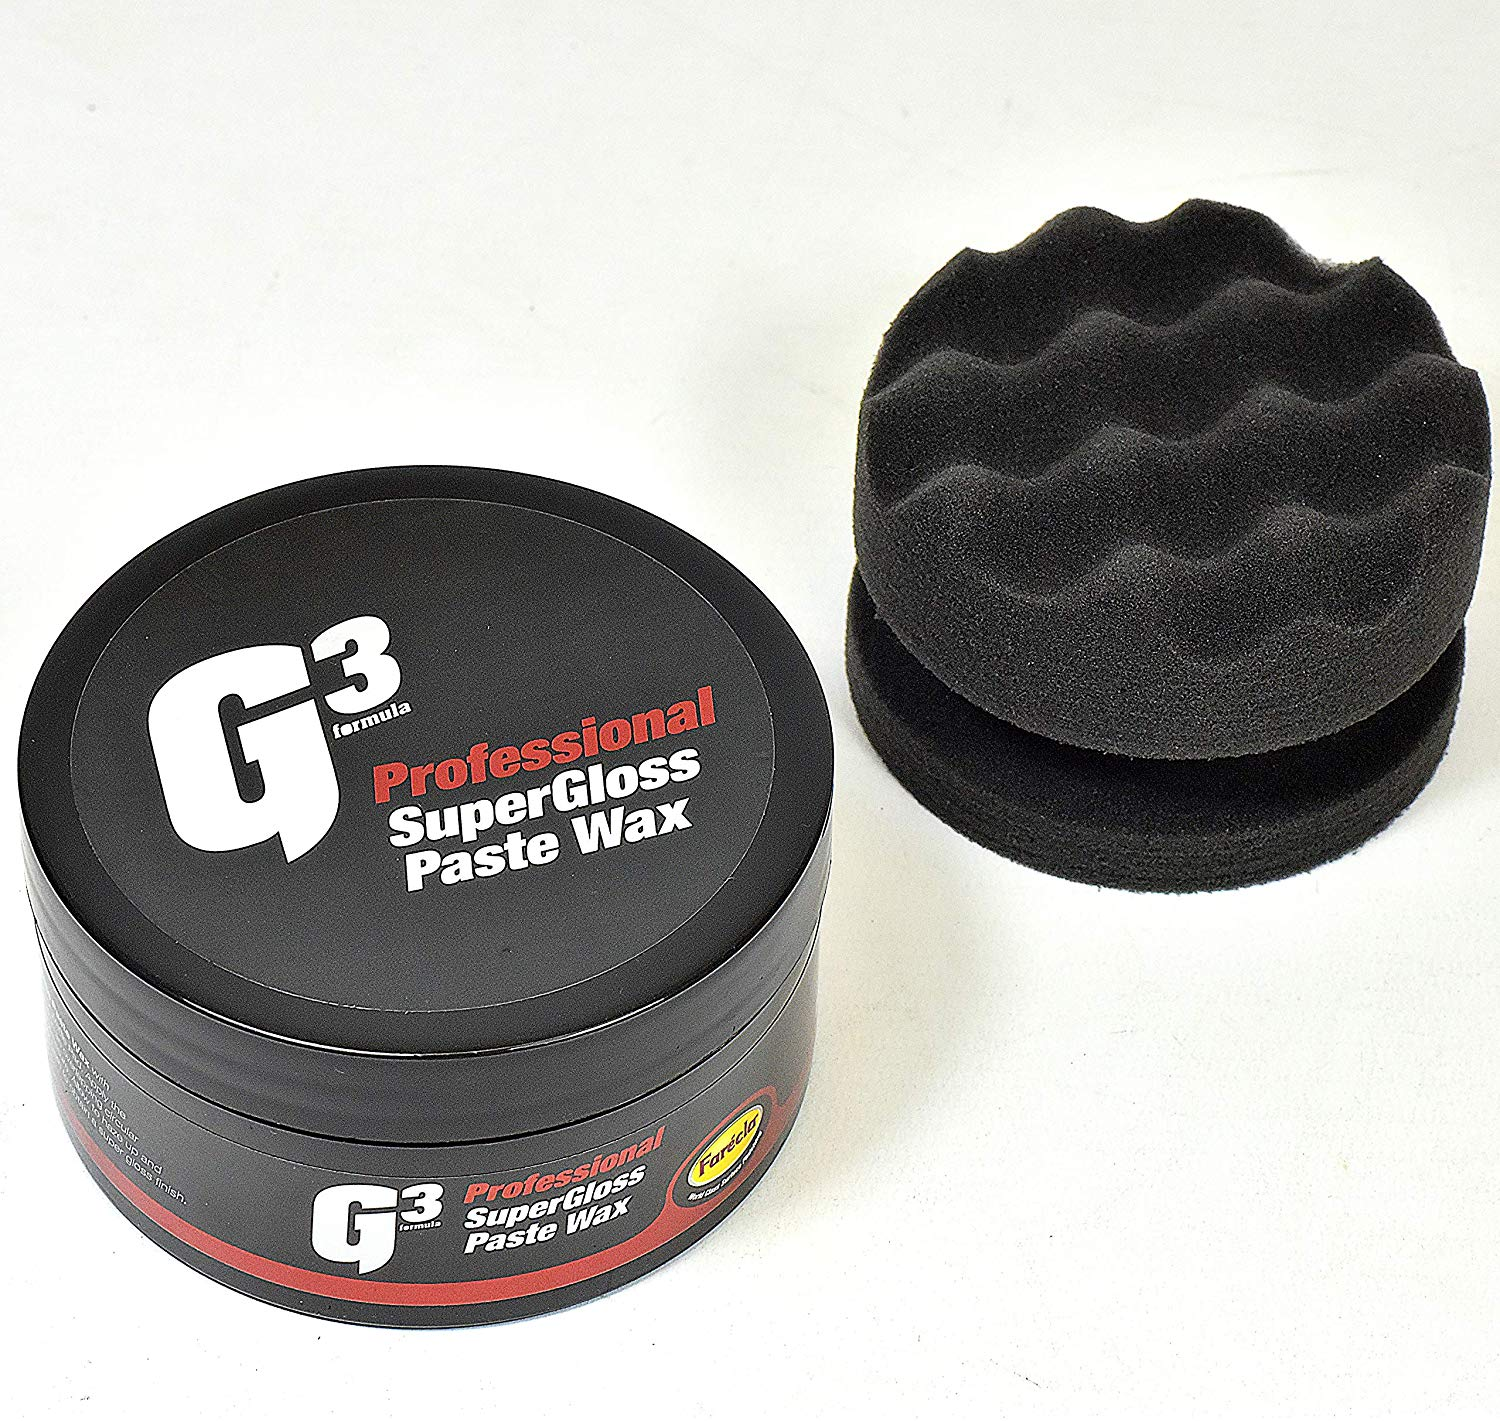 G3 Pro 7177 SuperGloss Paste Wax, 200g